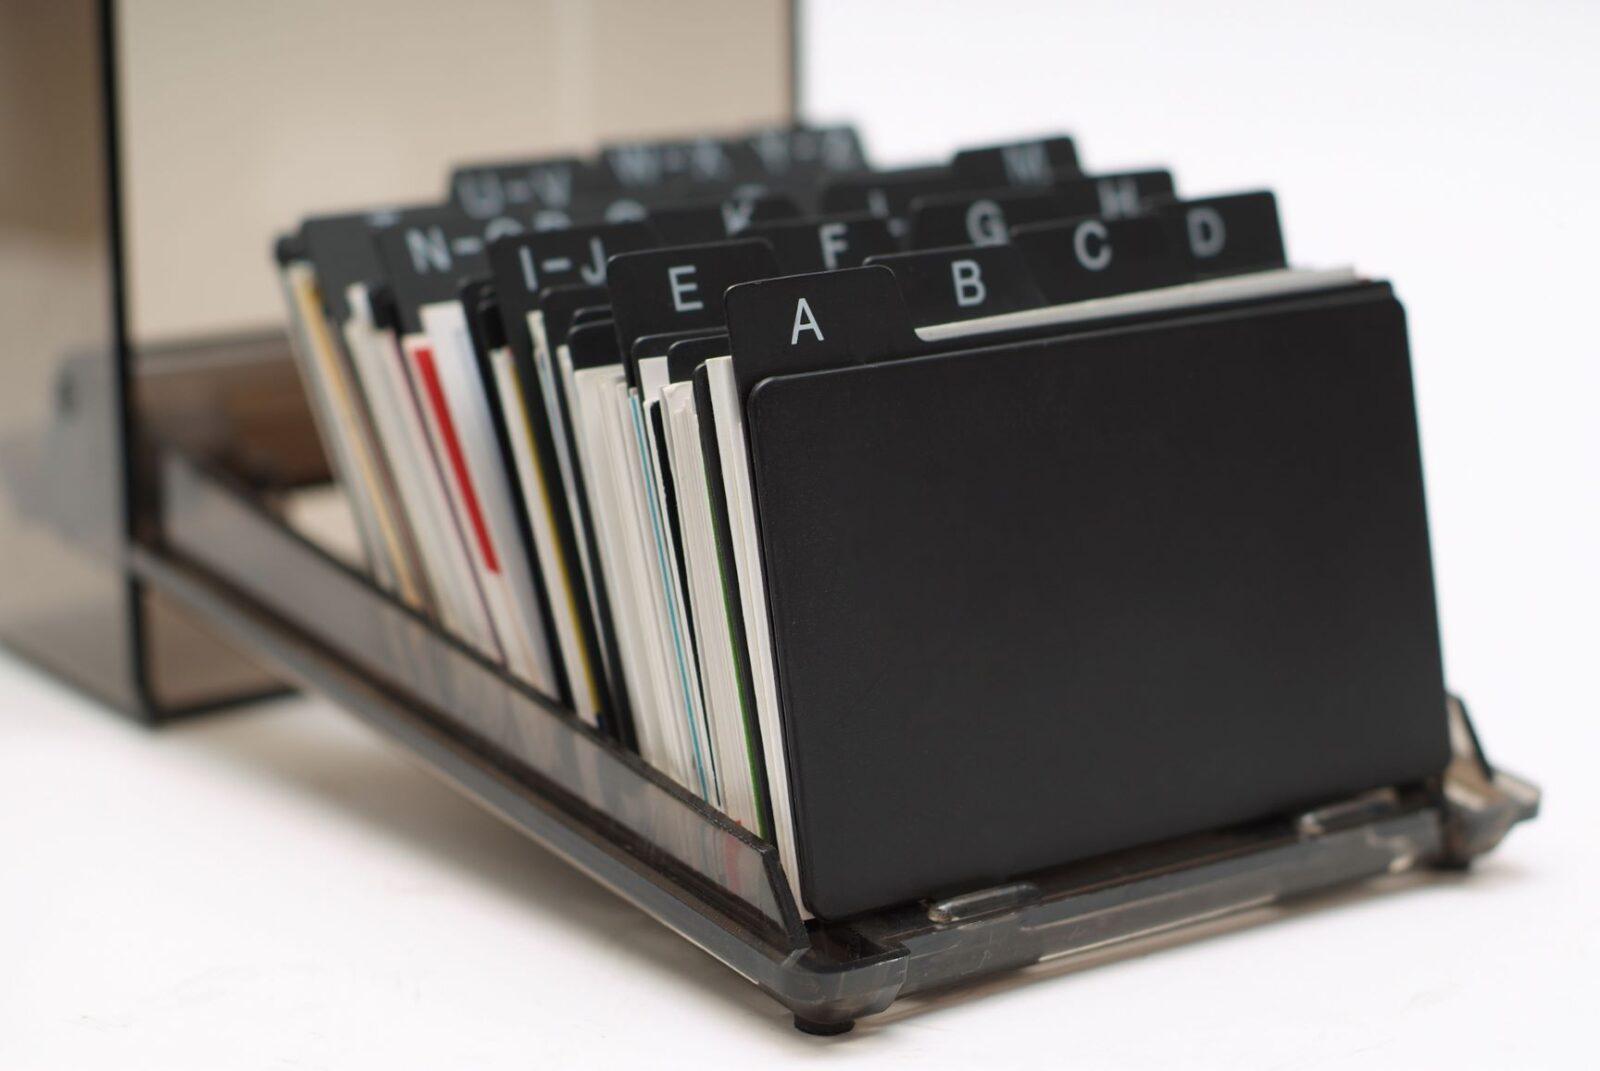 Close-up view of a Rolodex, alphabetically organizing index cards with the names and contact information of different sales leads.